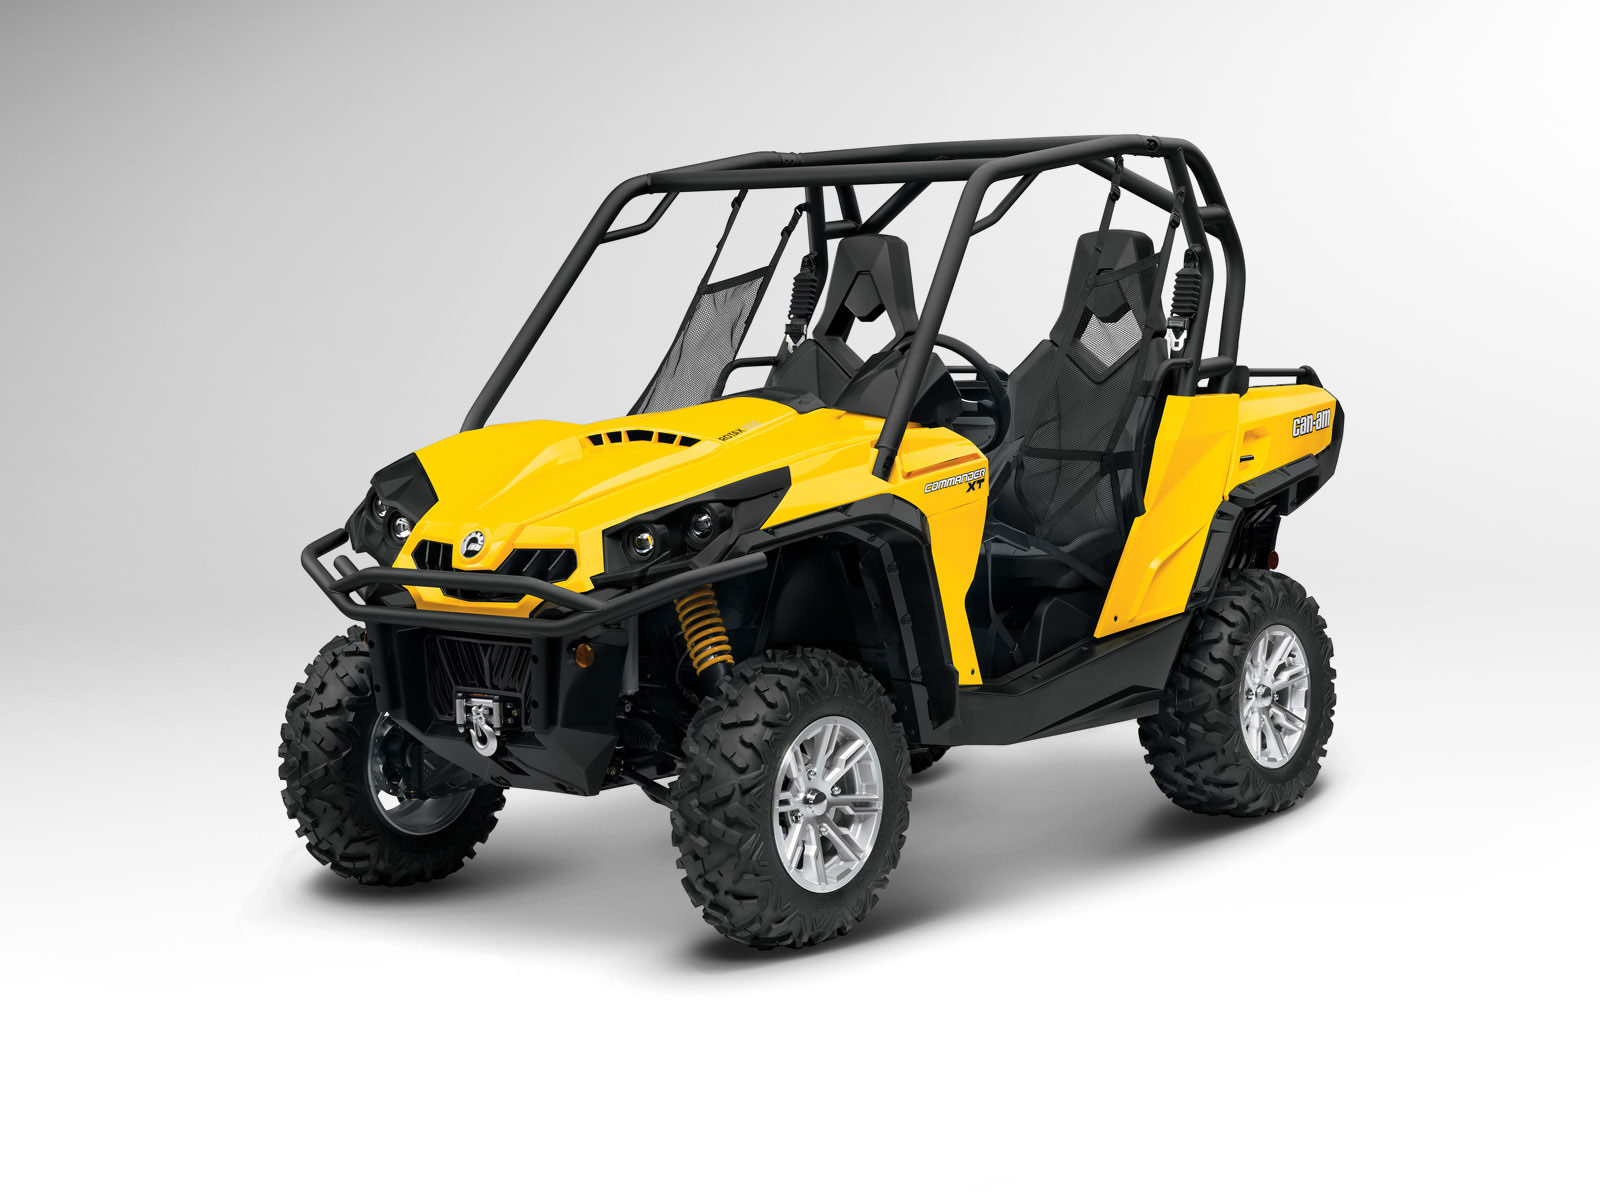 2012 Can-Am Commander 800R XT ATV pictures 5